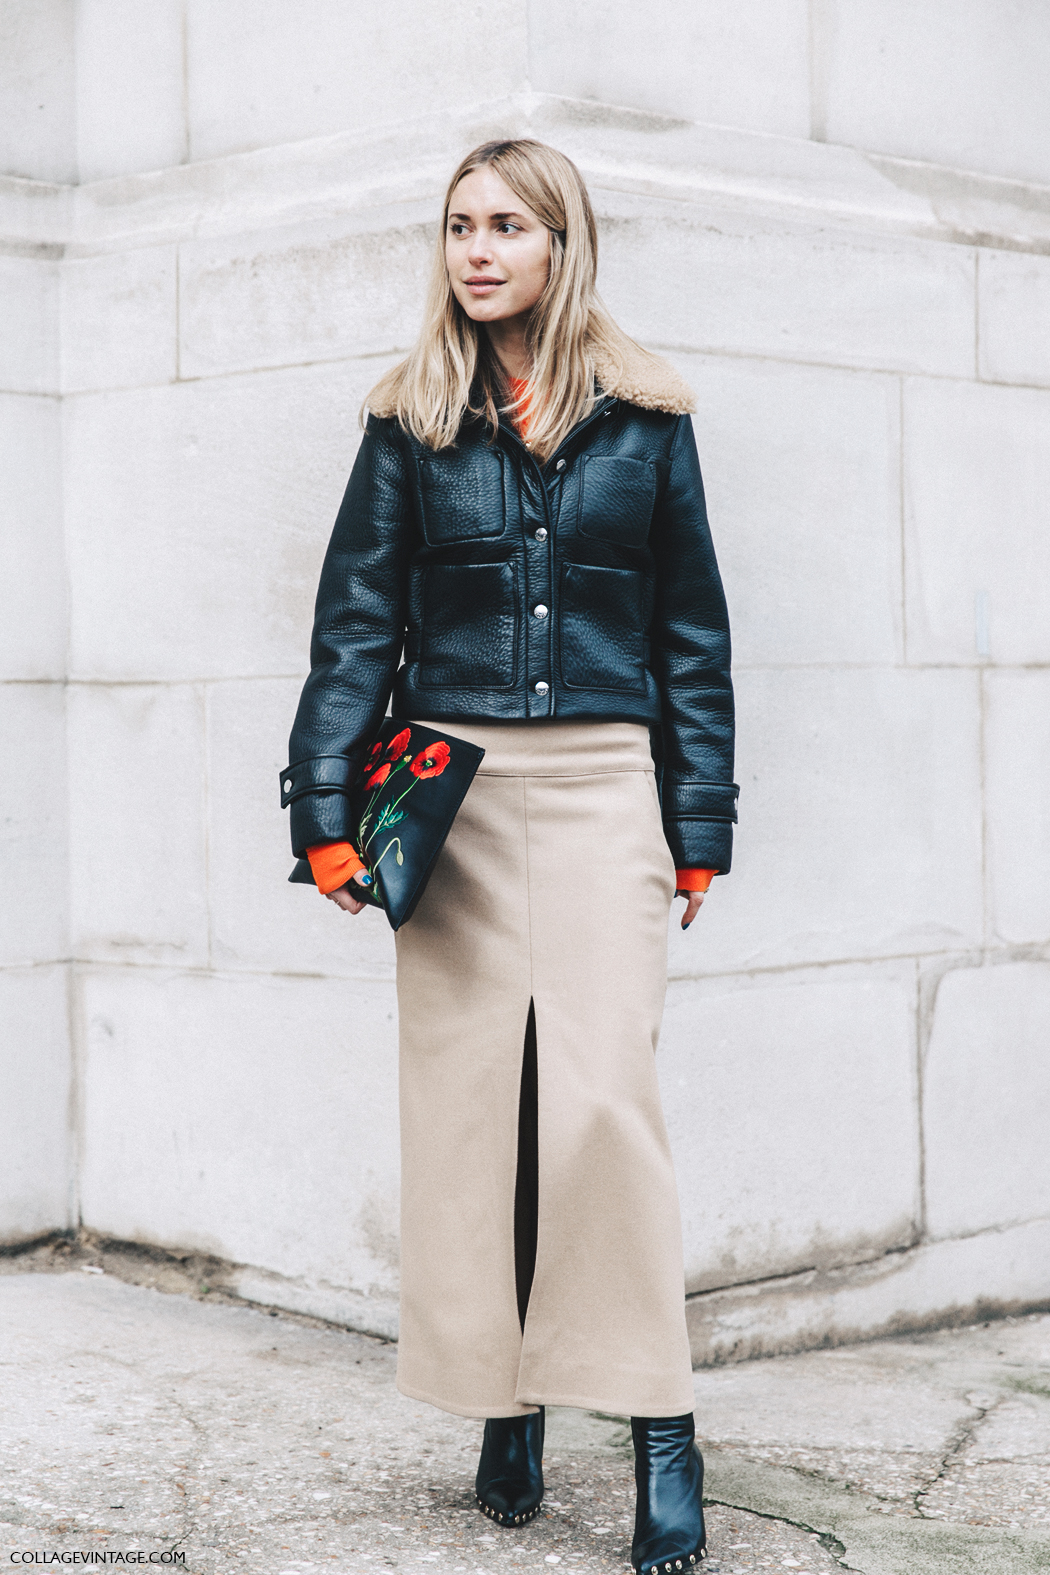 Pernille Teisbaek - Paris Fashion Week Street Style Collage Vintage